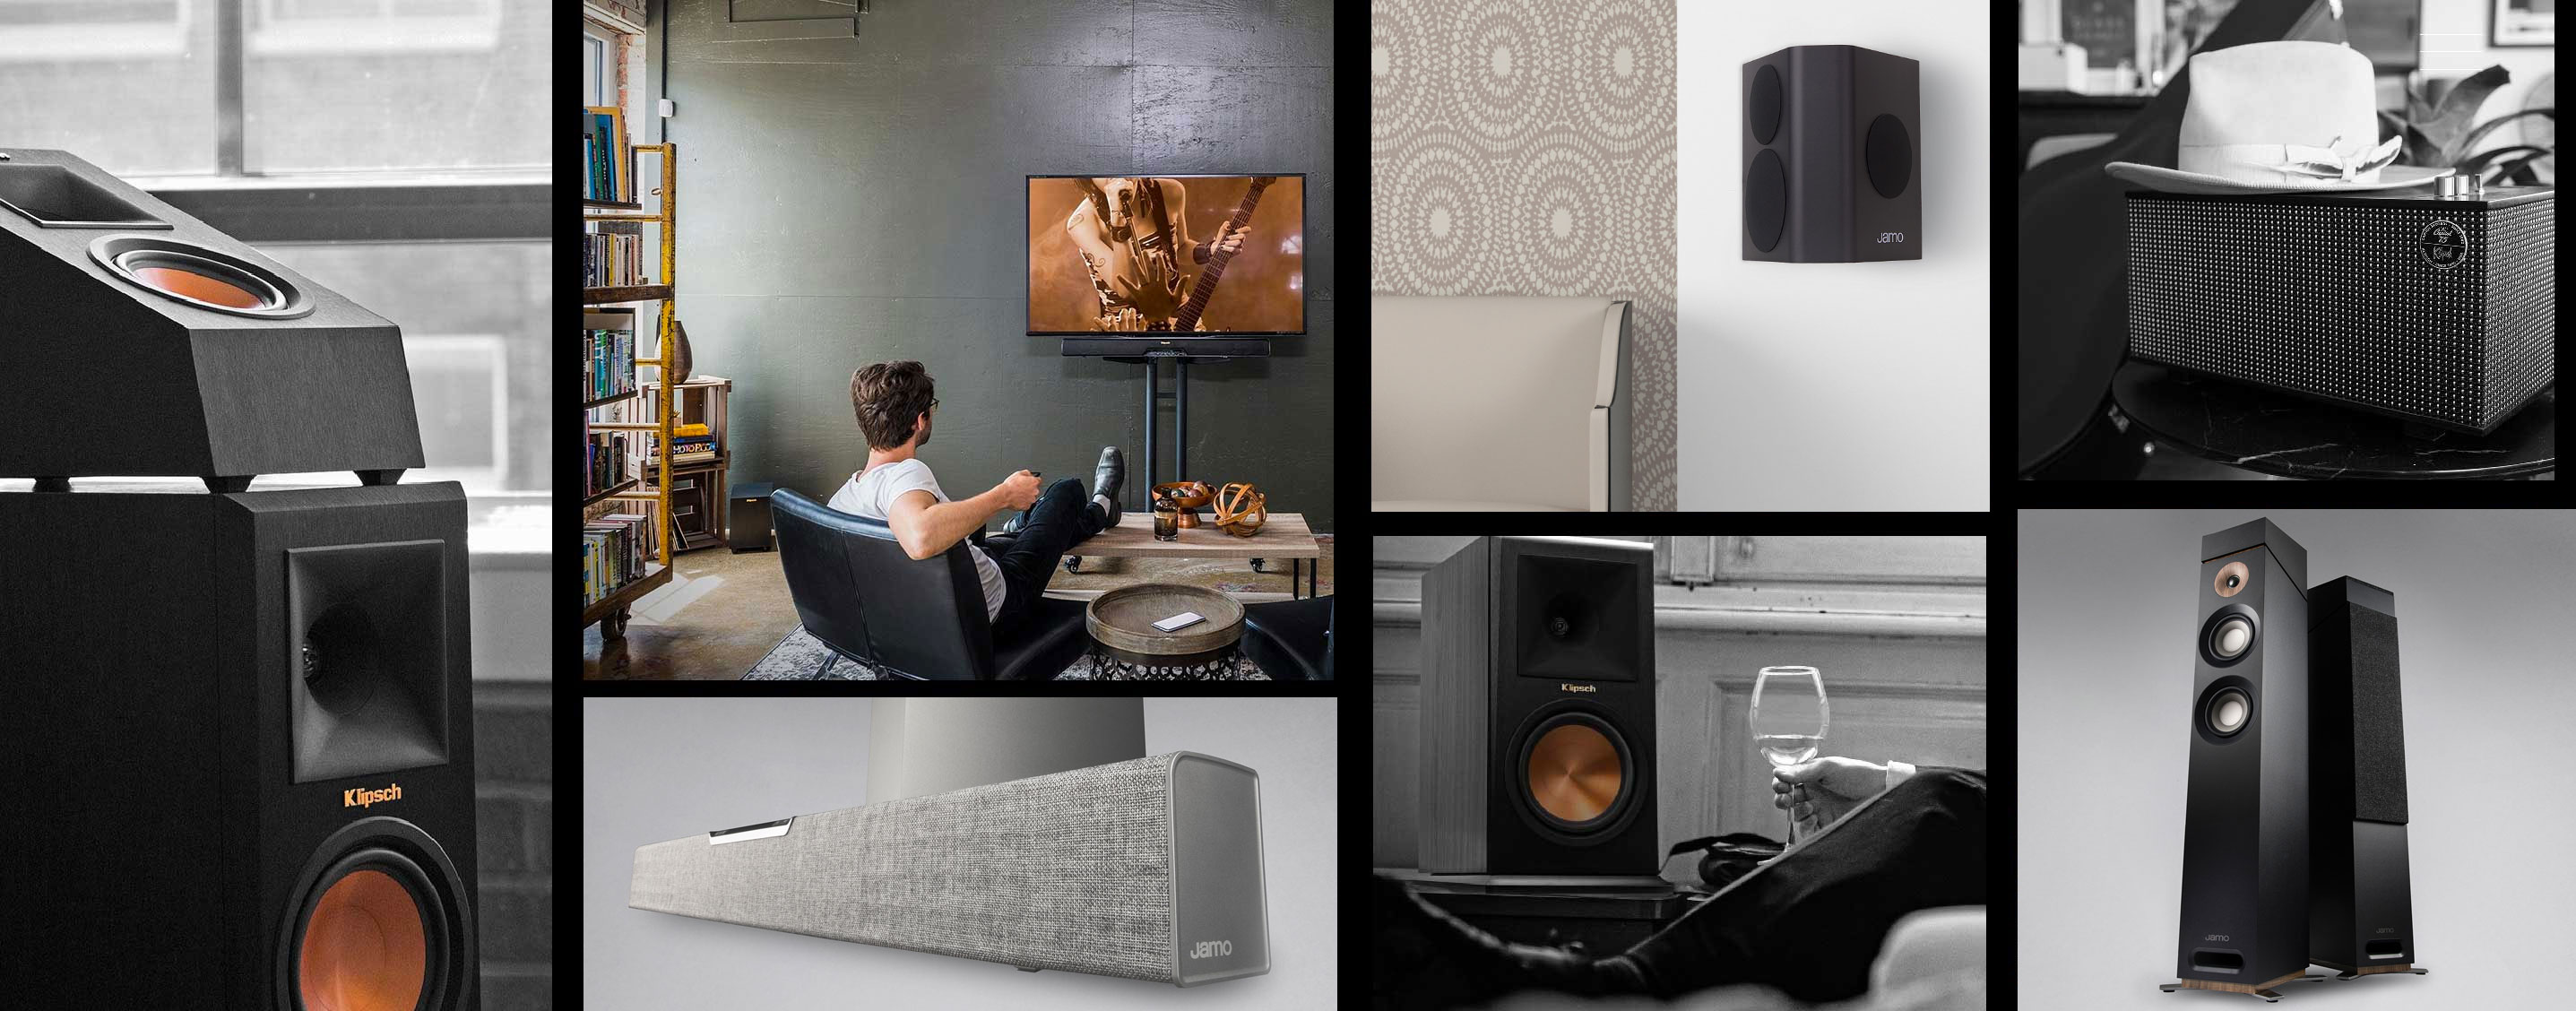 Personalized Home Entertainment